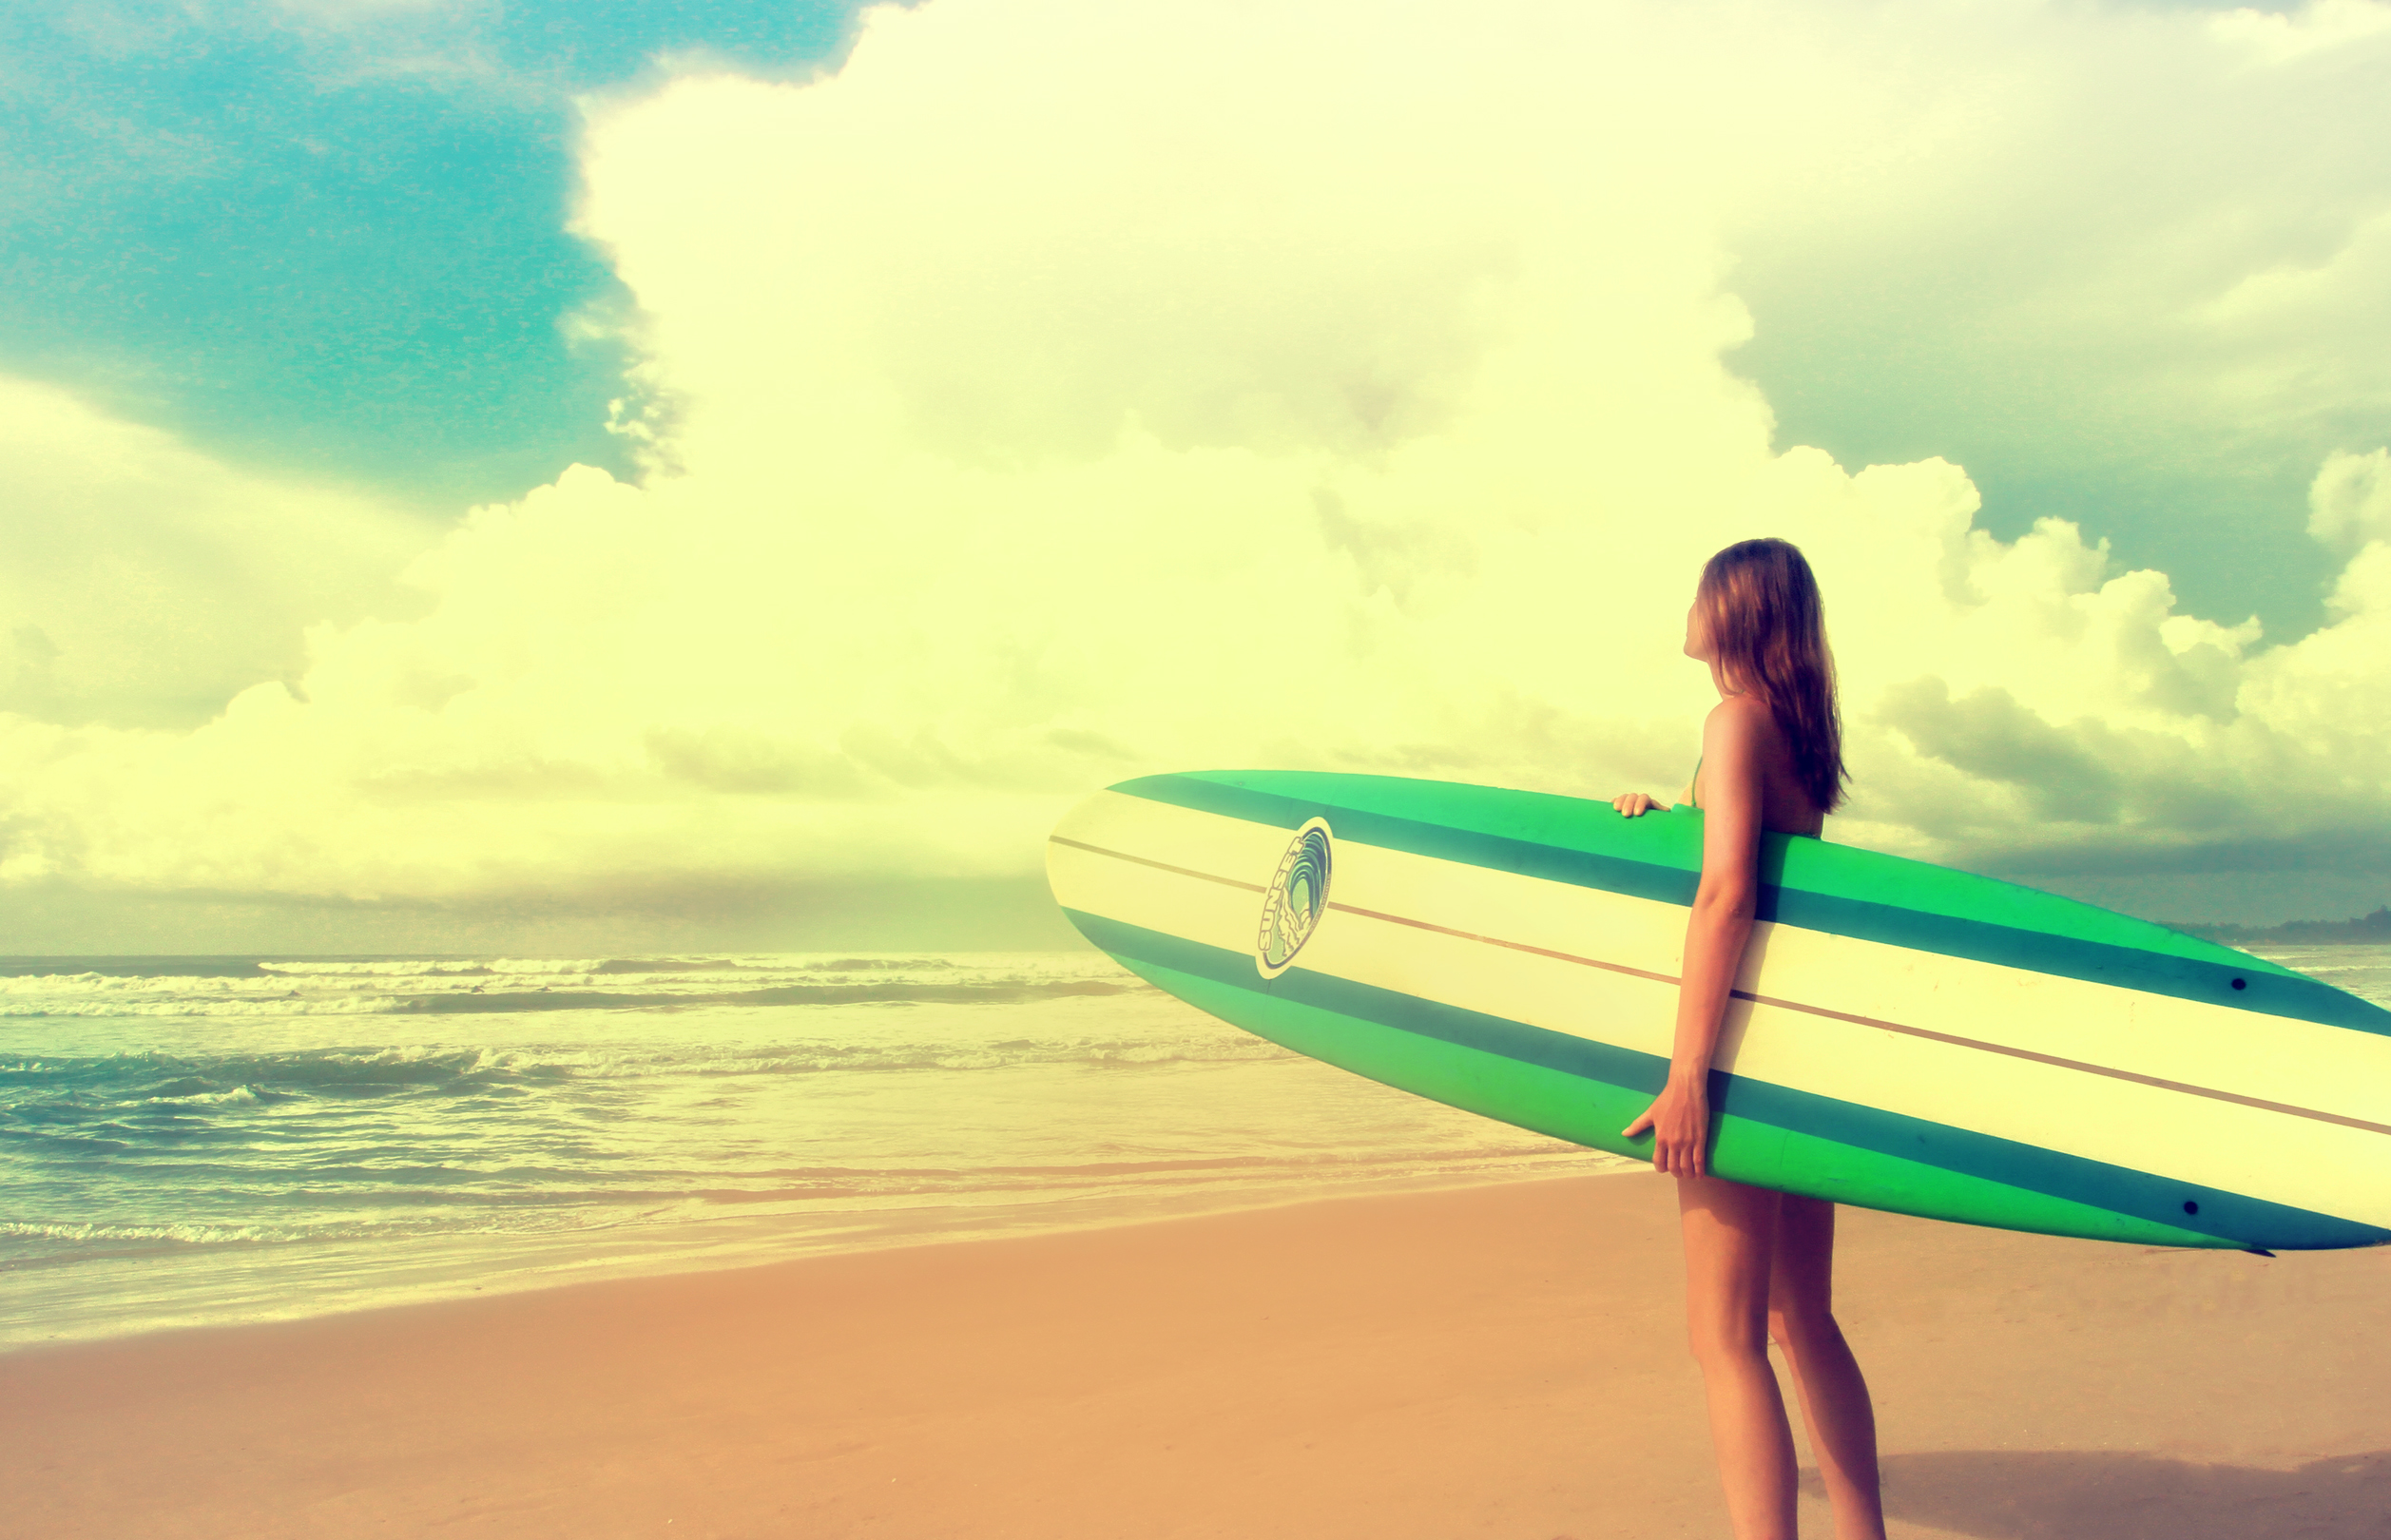 Up to the challenge - woman with surfboard ready to surf photo